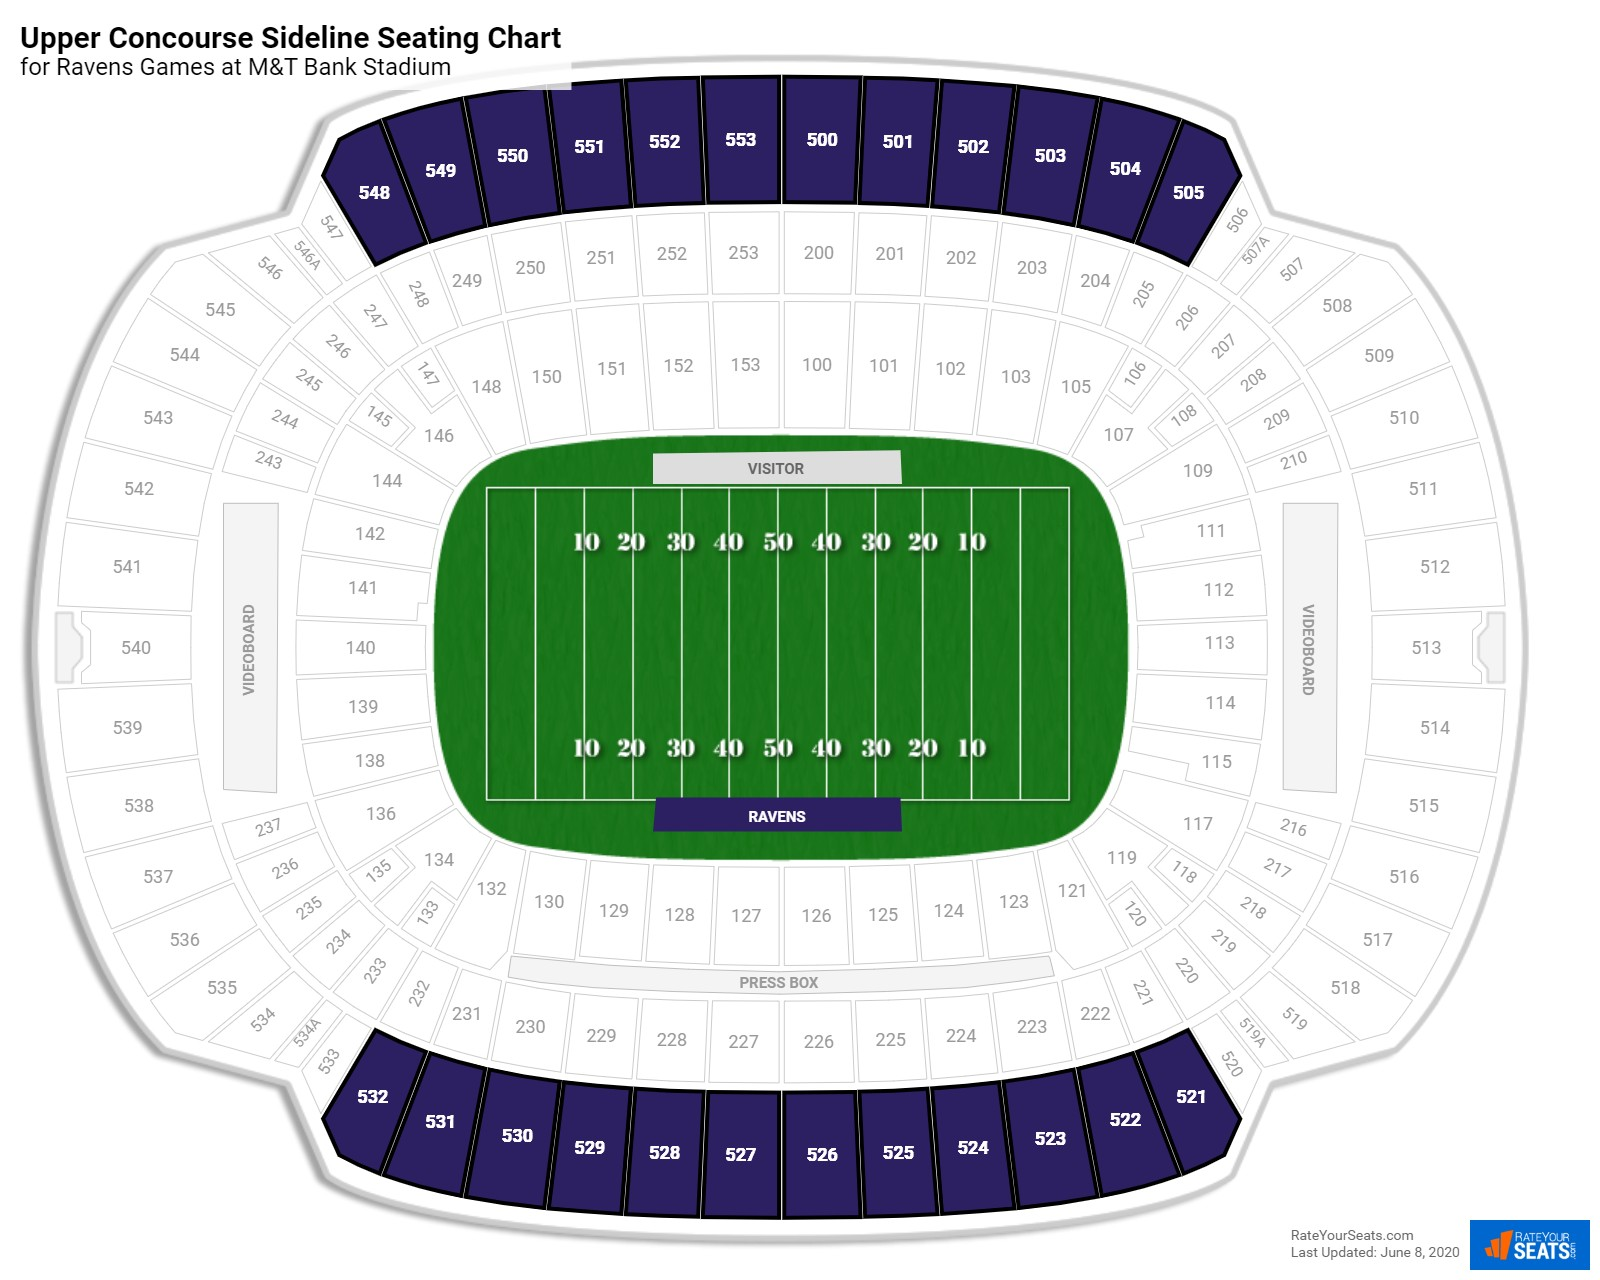 M&T Bank Stadium Upper Concourse Sideline seating chart